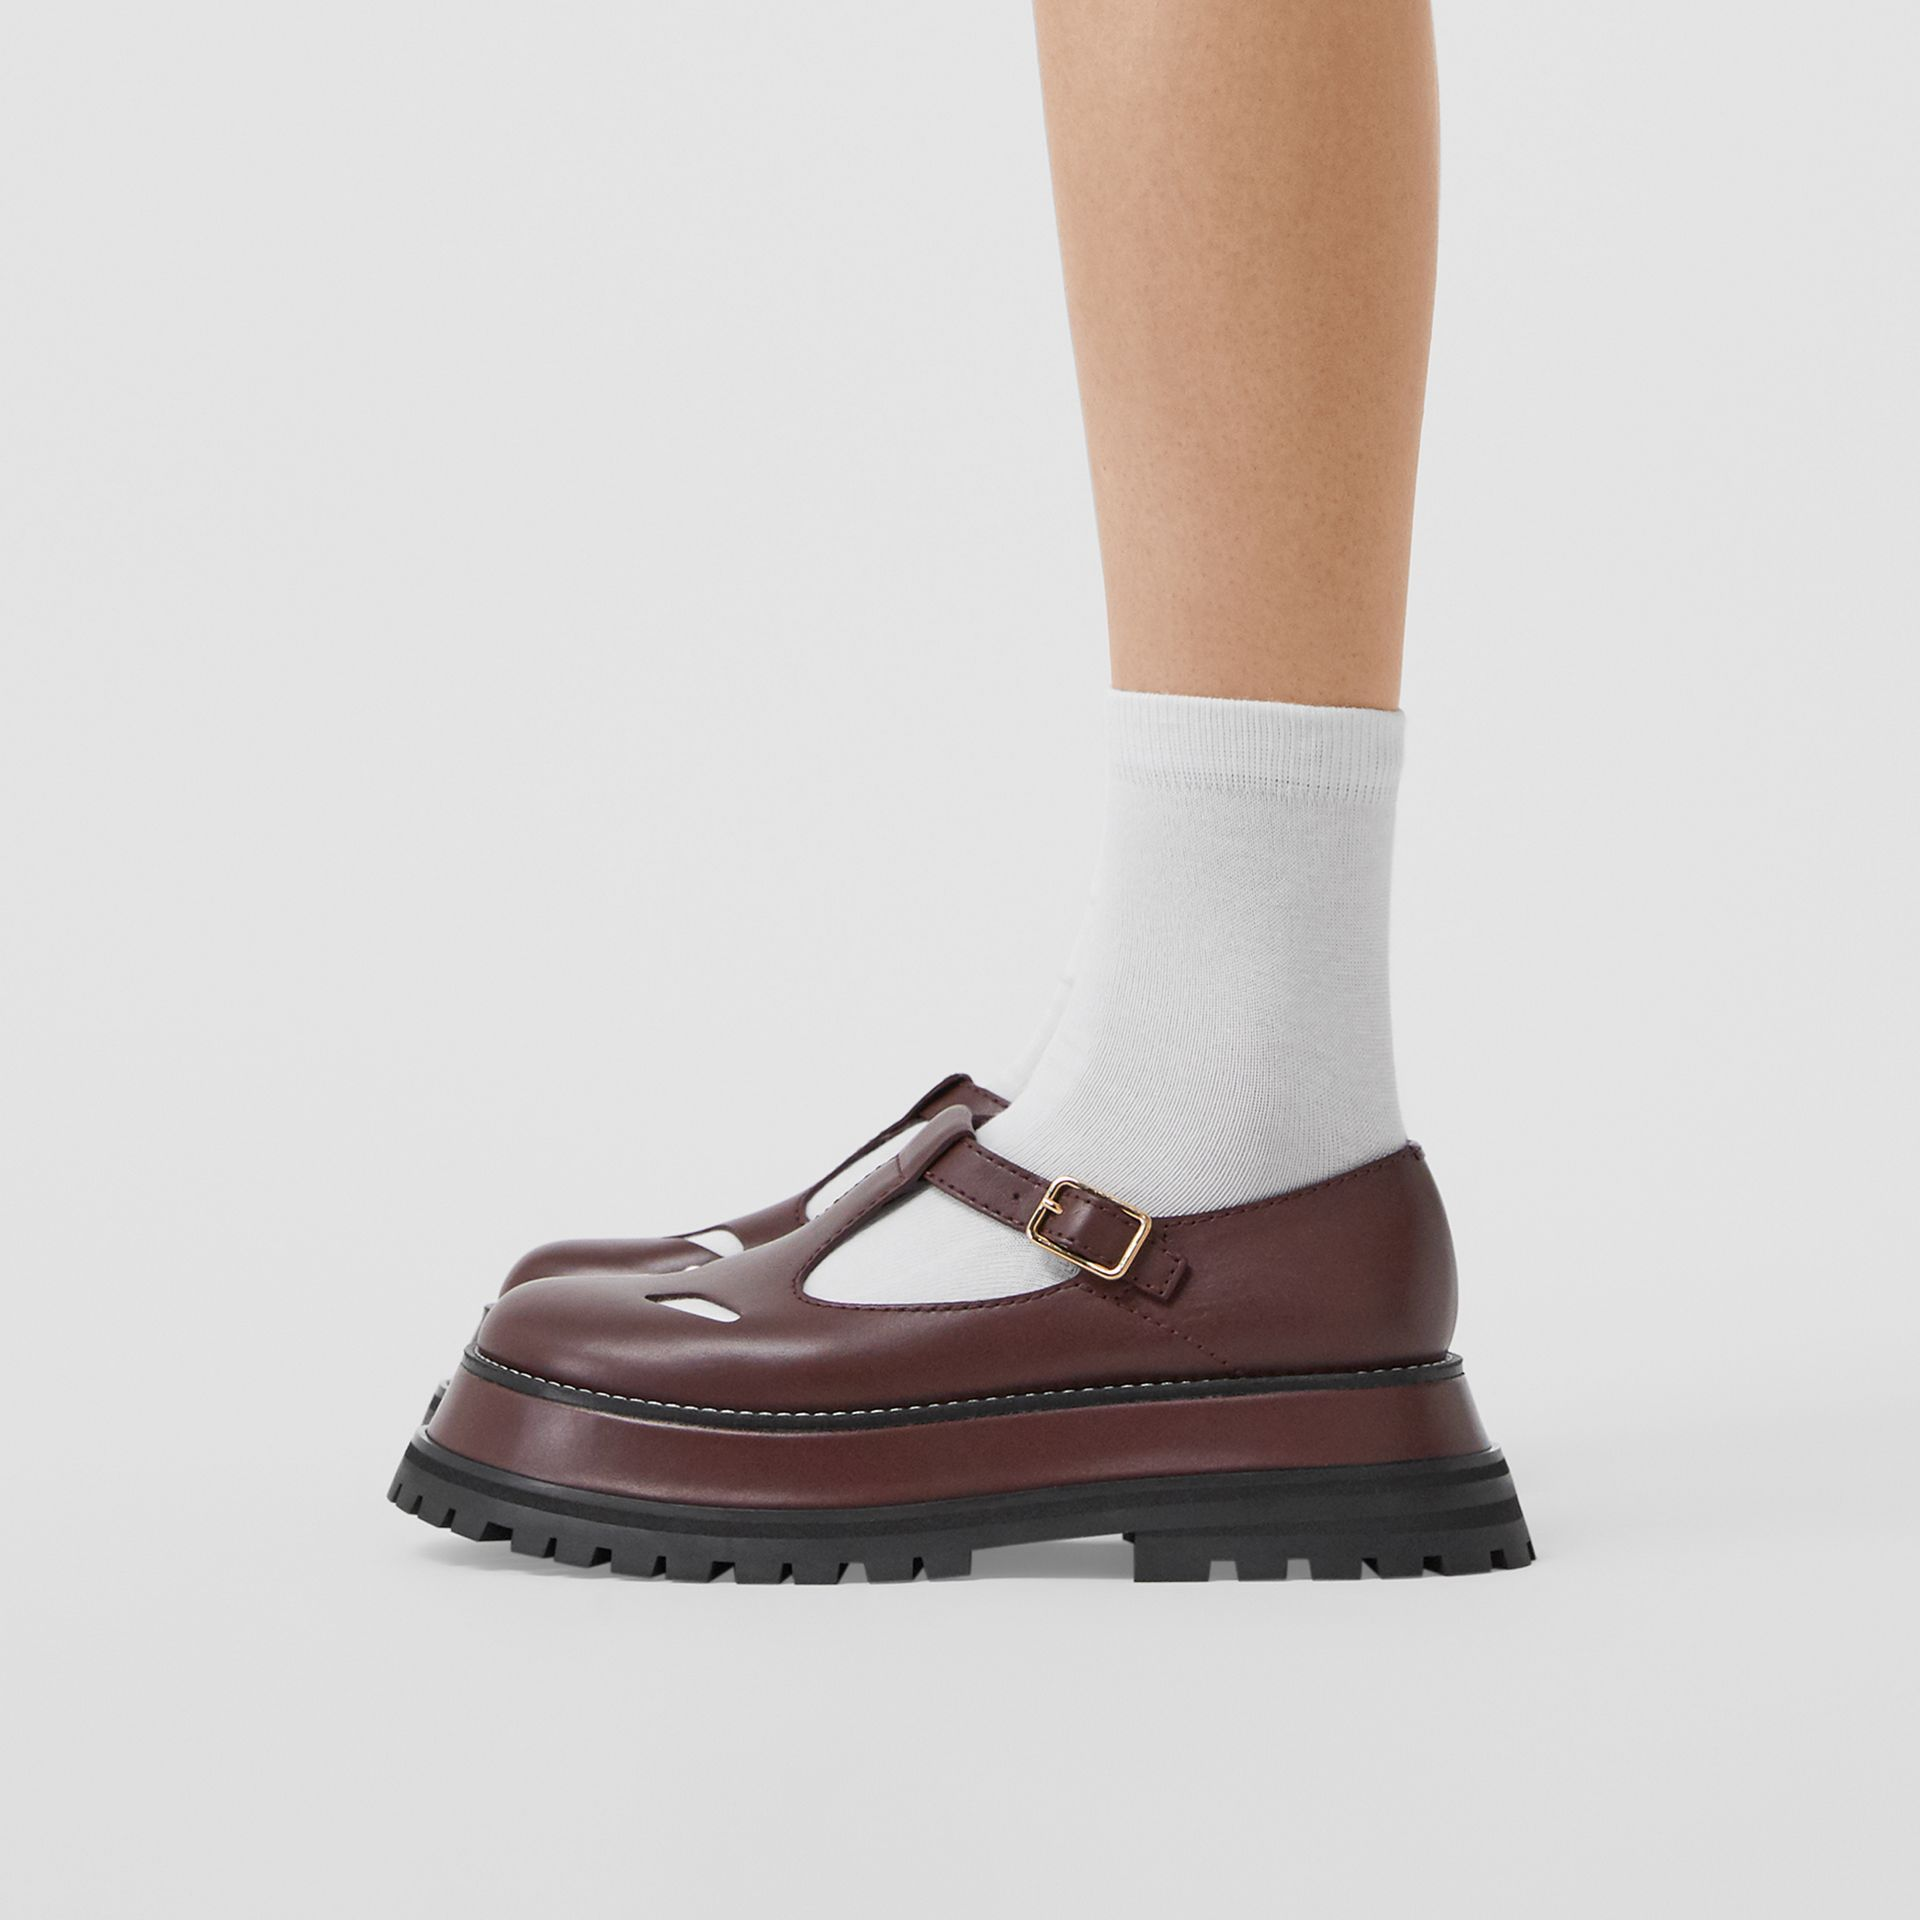 Leather T-bar Shoes in Bordeaux - Women | Burberry - gallery image 2